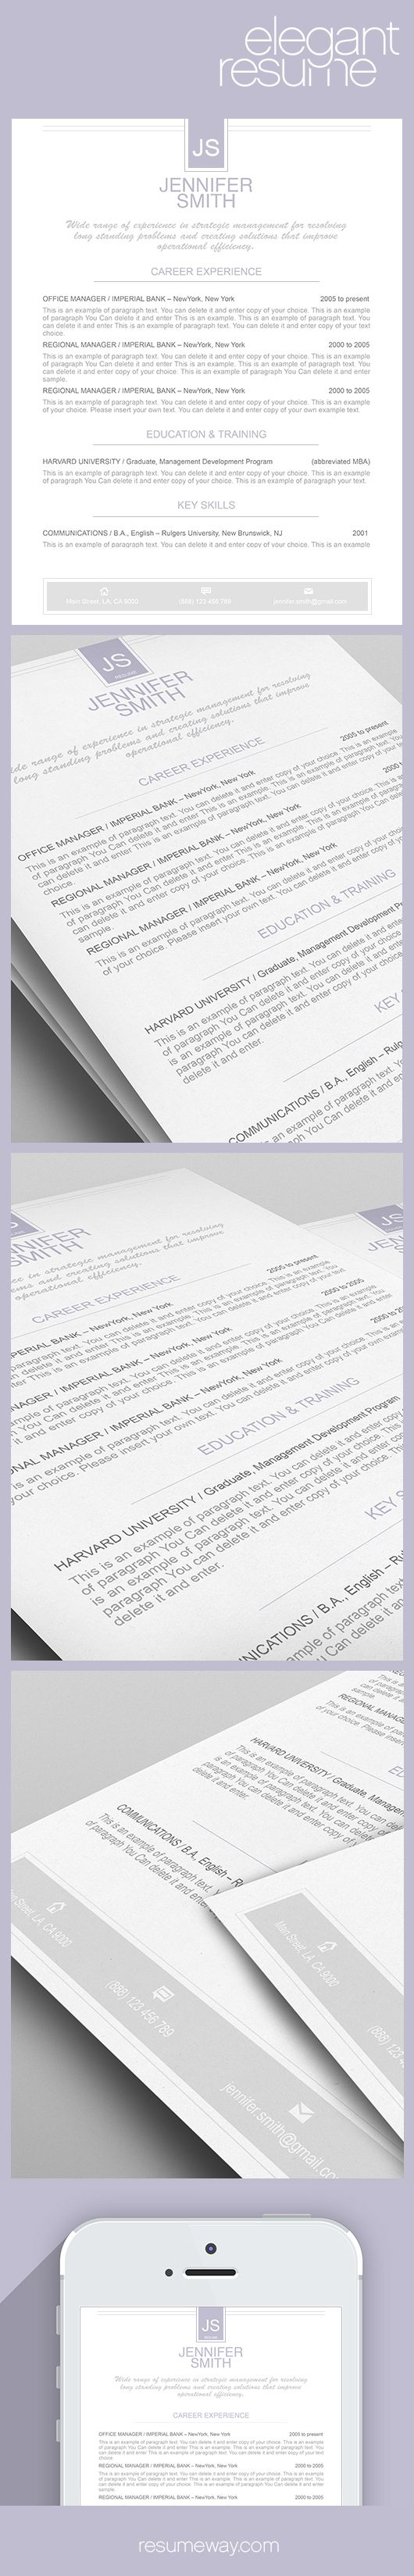 Cover letter dos donts resume cover letters school and job cover letter dos donts resume cover letters school and job interviews madrichimfo Choice Image